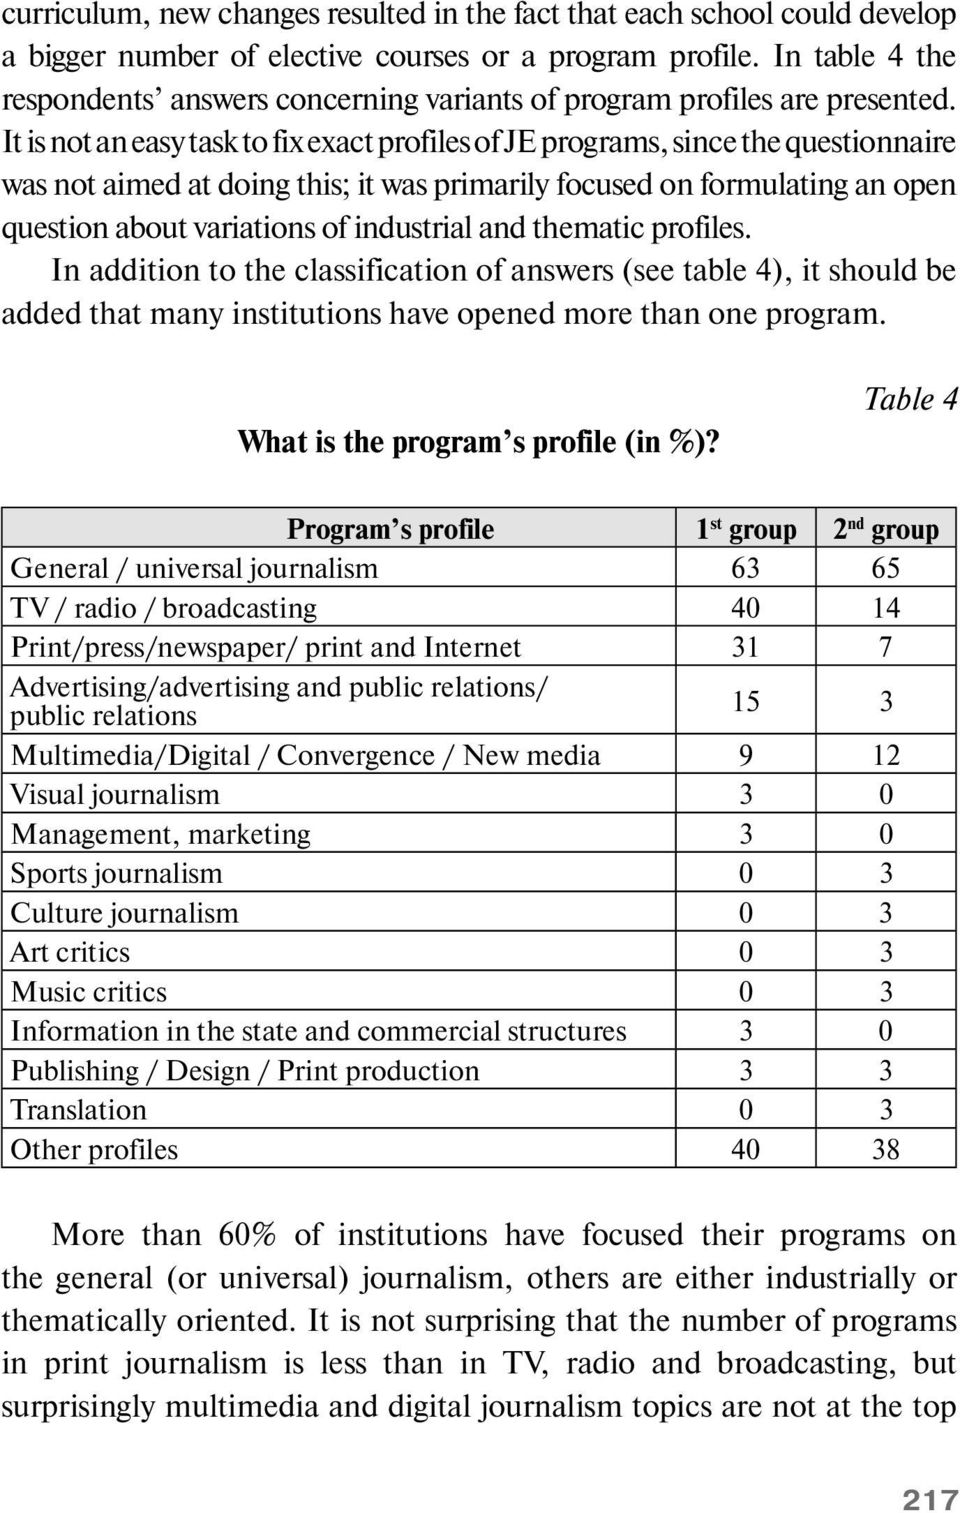 It is not an easy task to fix exact profiles of JE programs, since the questionnaire was not aimed at doing this; it was primarily focused on formulating an open question about variations of